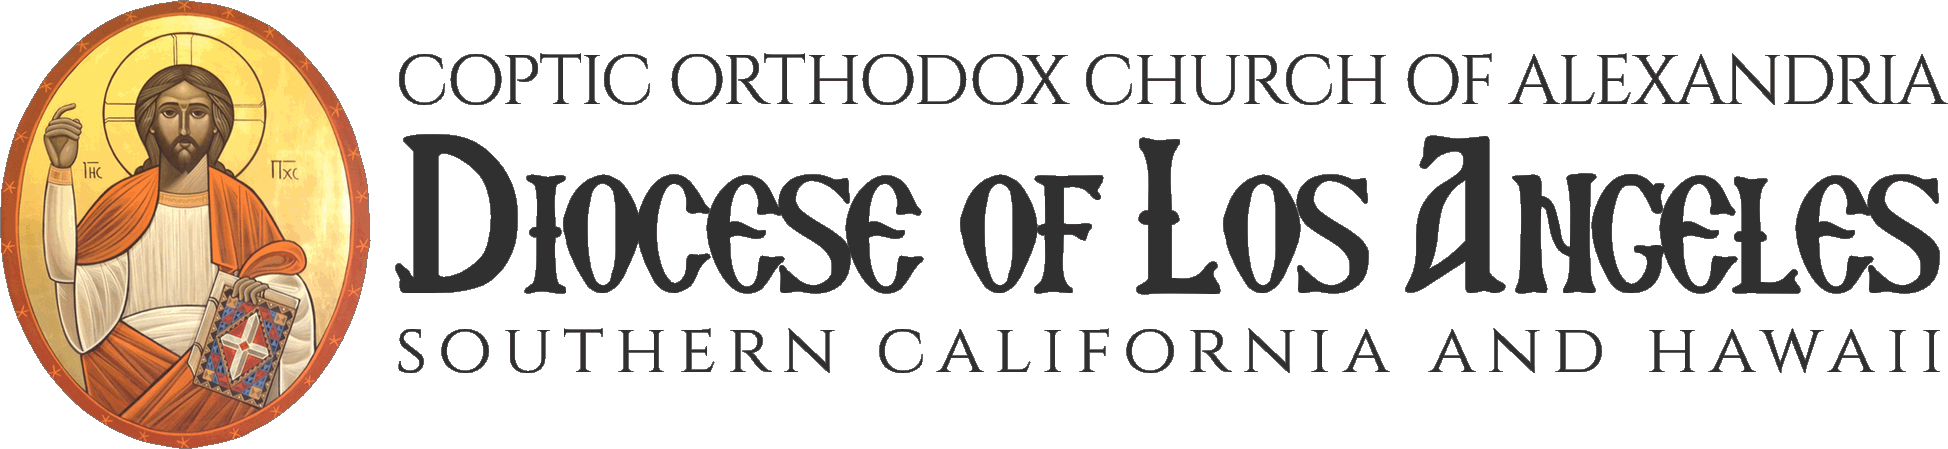 Coptic Orthodox Diocese of Los Angeles